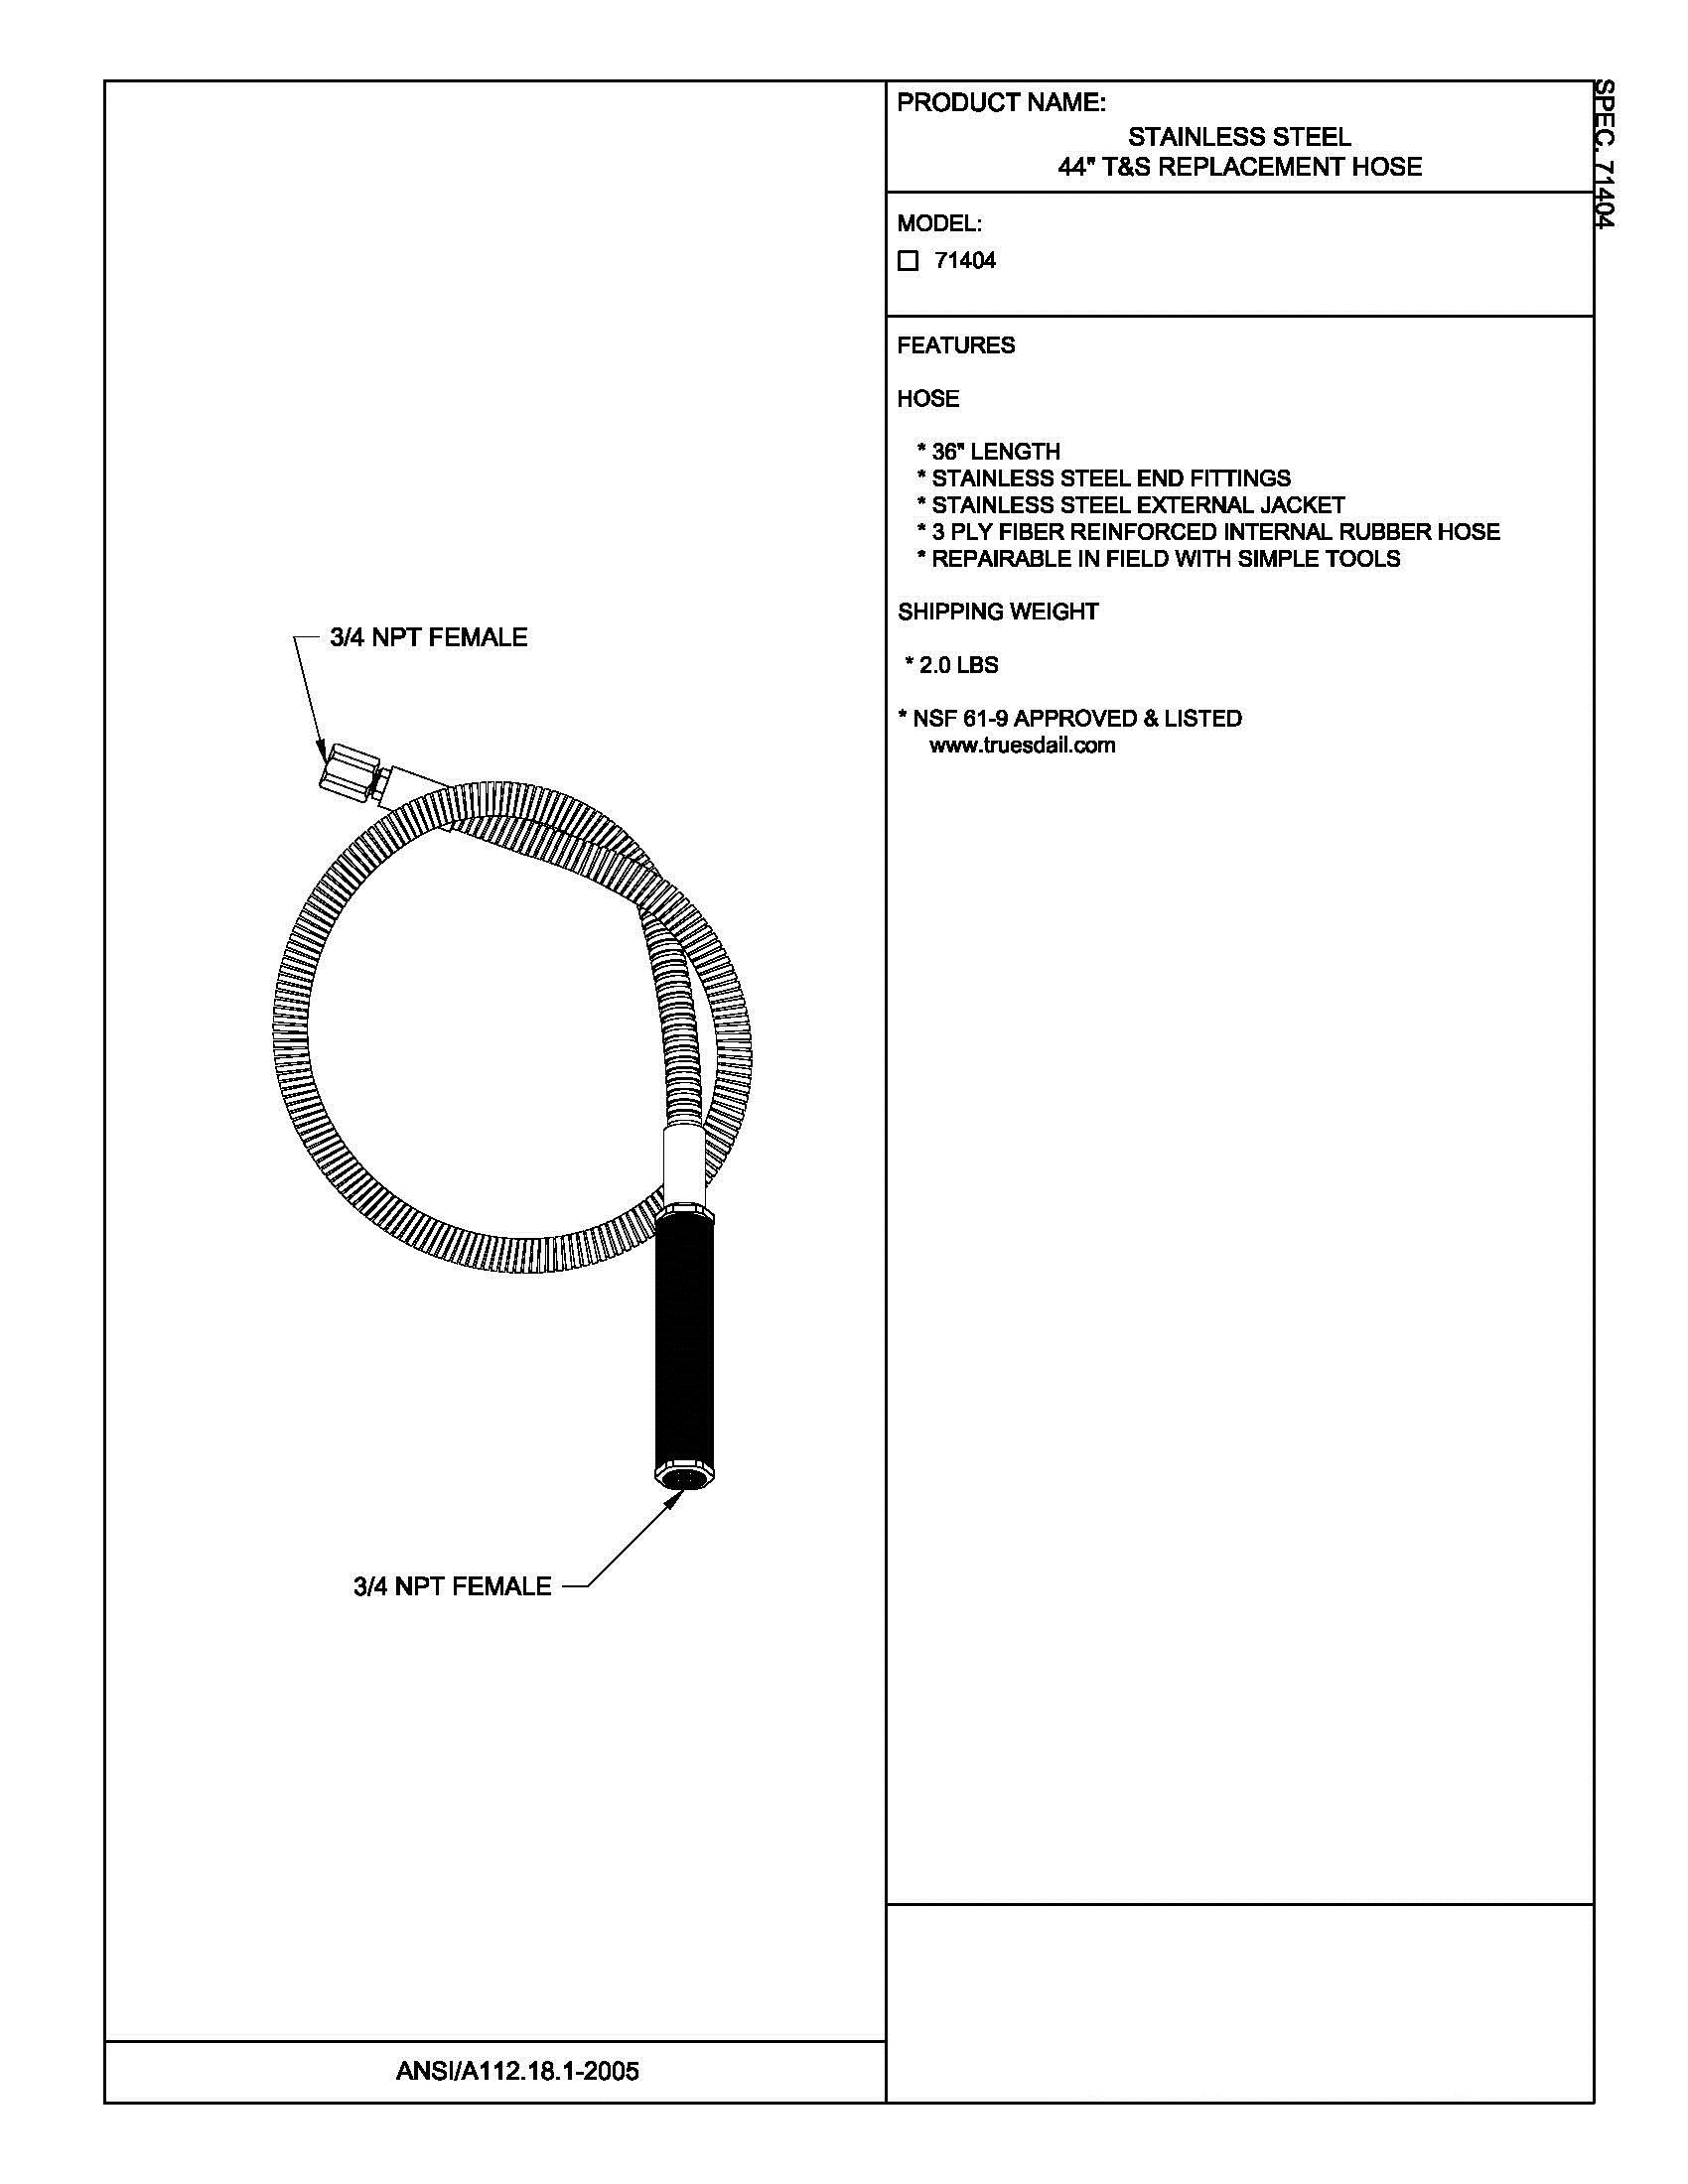 Fisher 71404 Stainless Steel 44'' T&S Replacement Hose